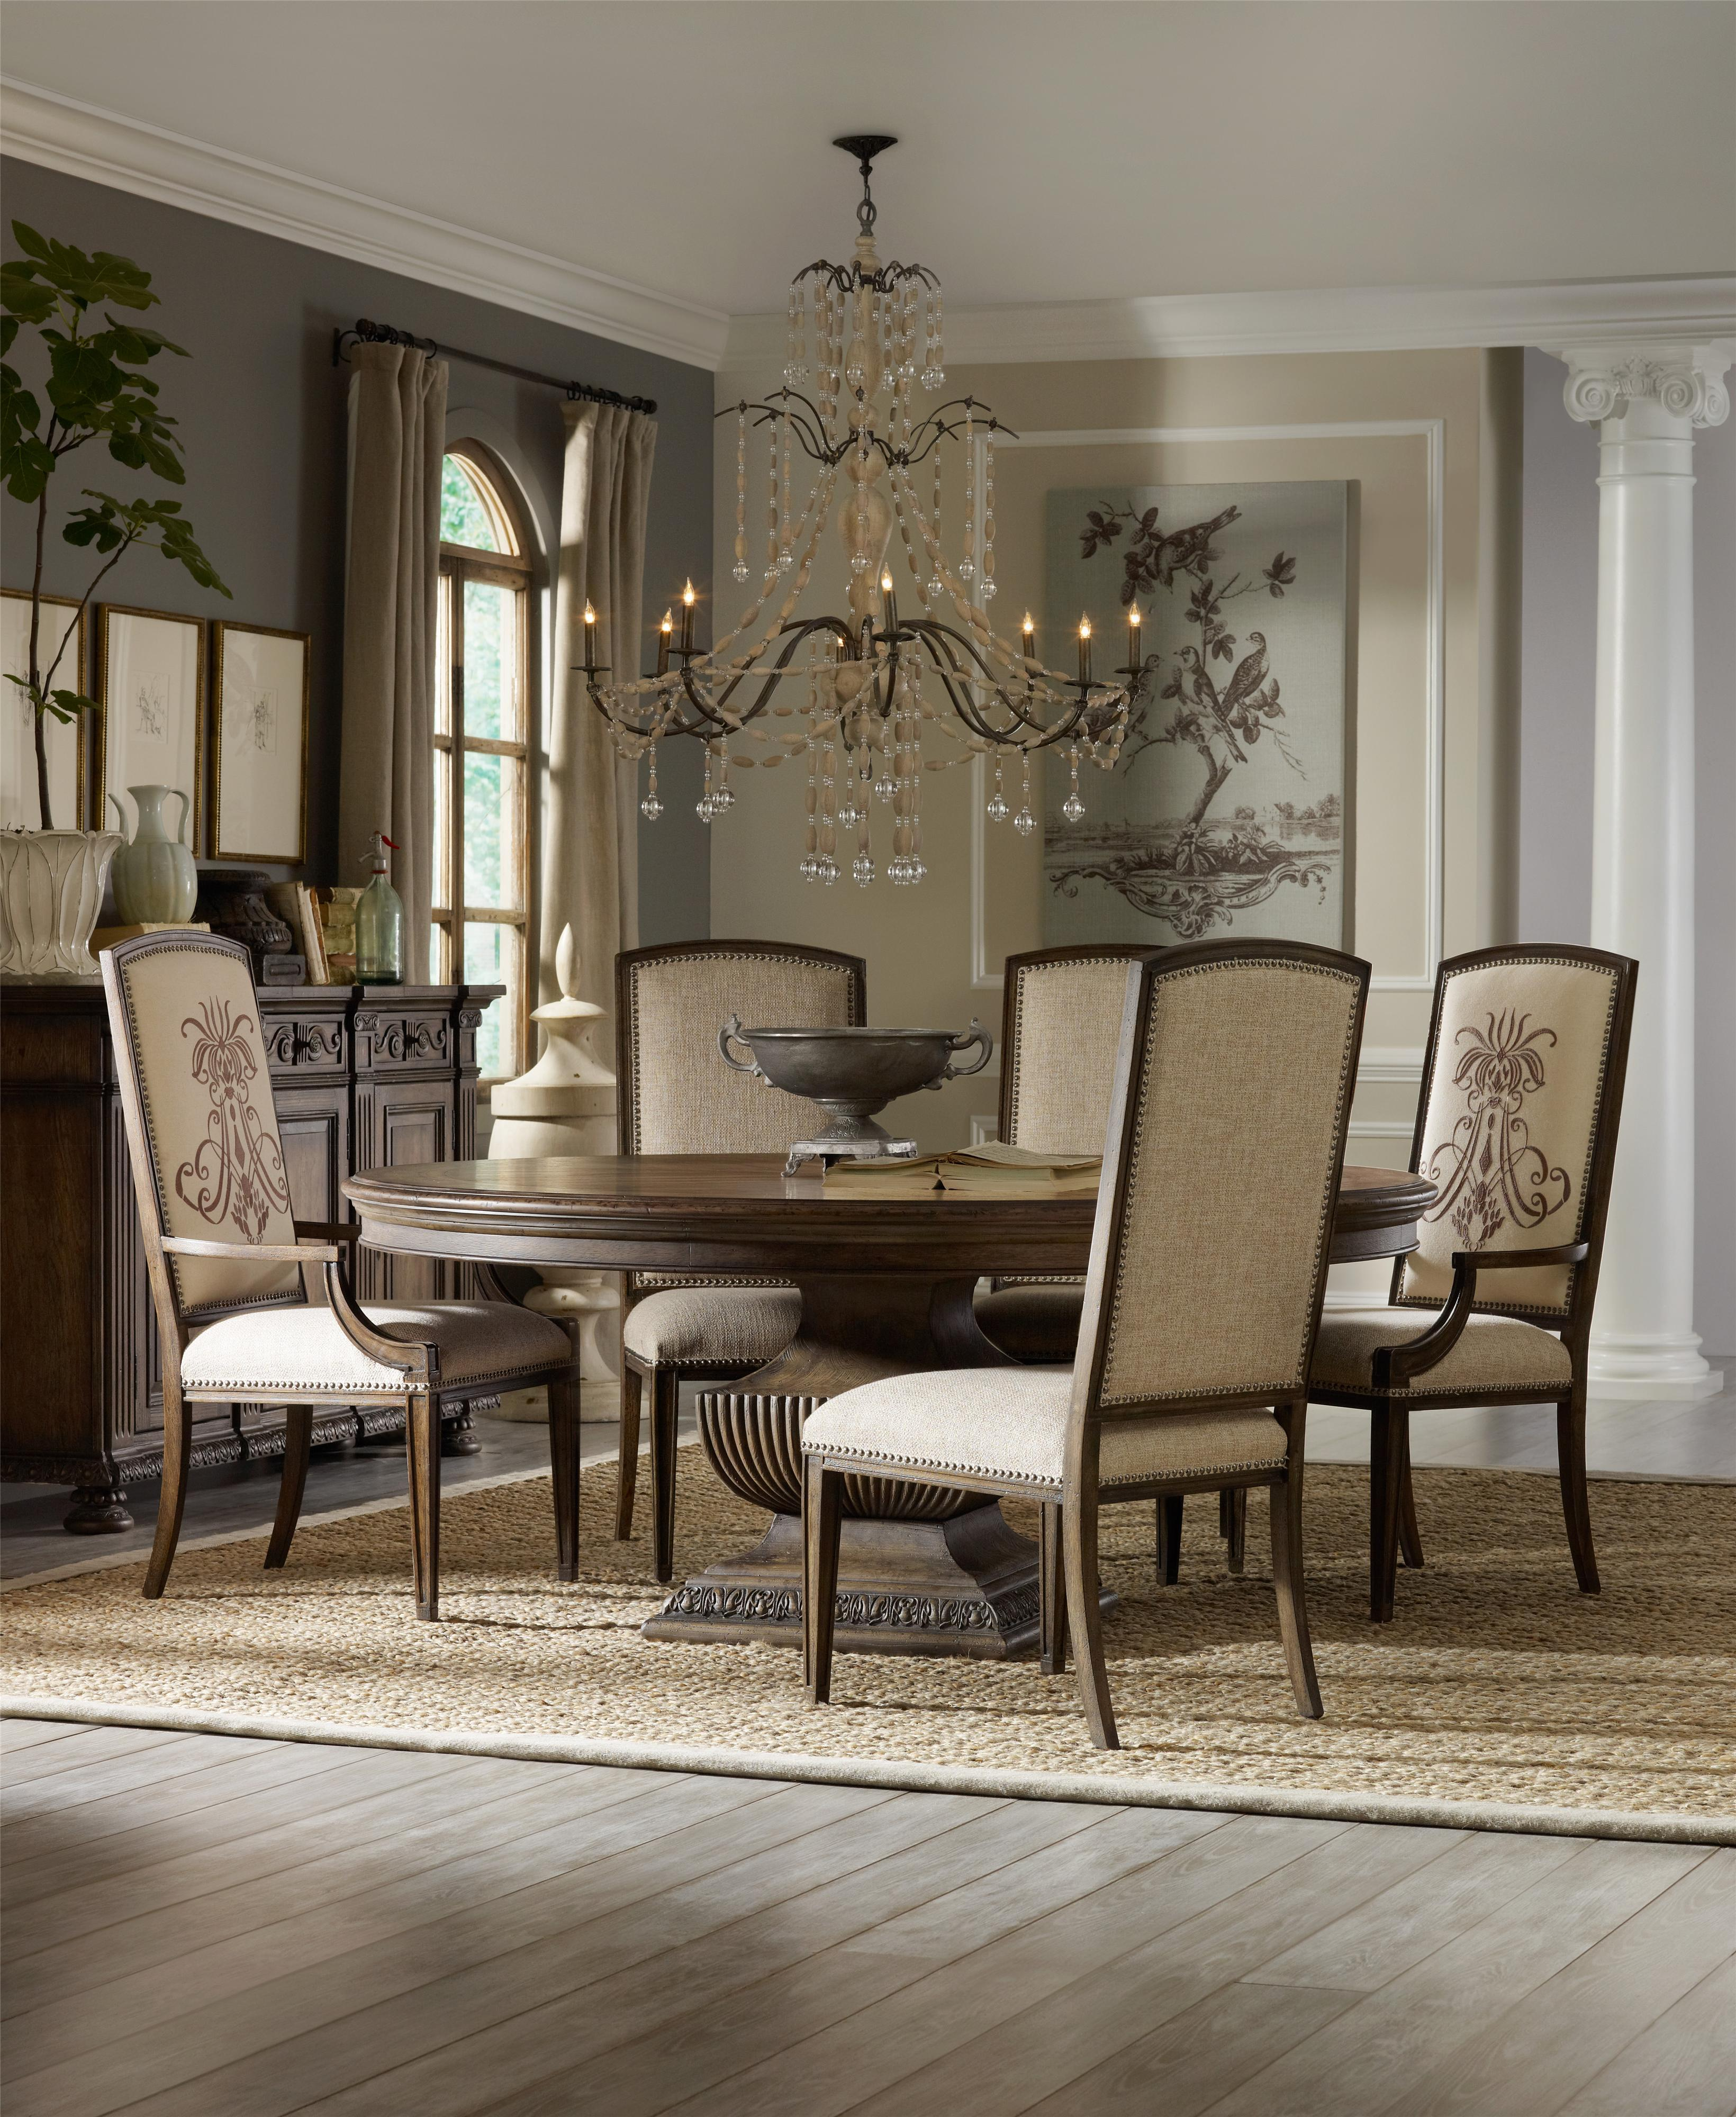 Rhapsody Dining Room Group by Hooker Furniture at Alison Craig Home Furnishings